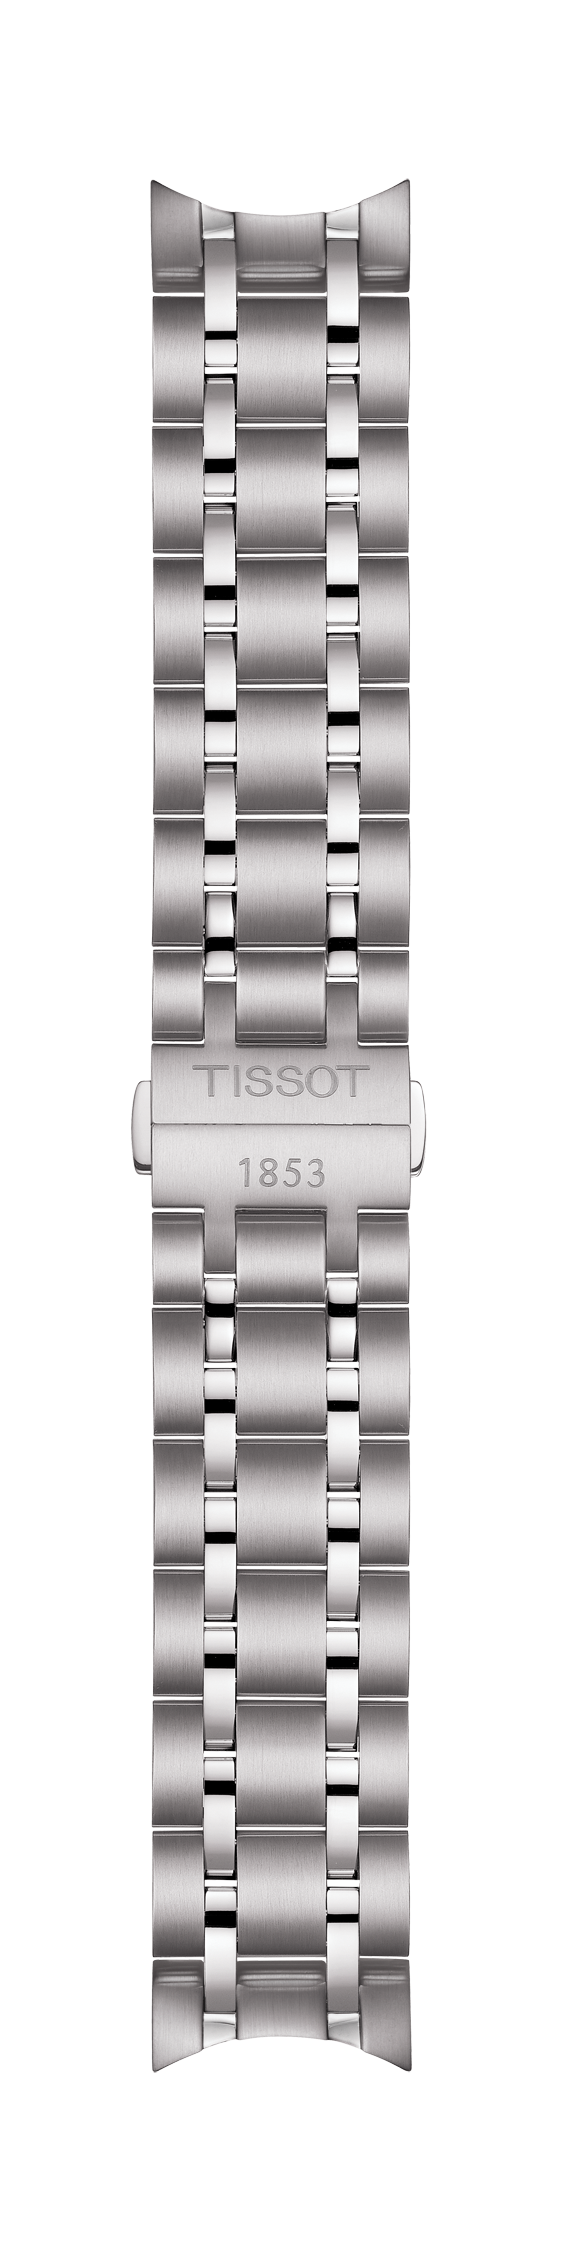 Tissot Couturier T035446A Stainless Steel Watch Bracelet